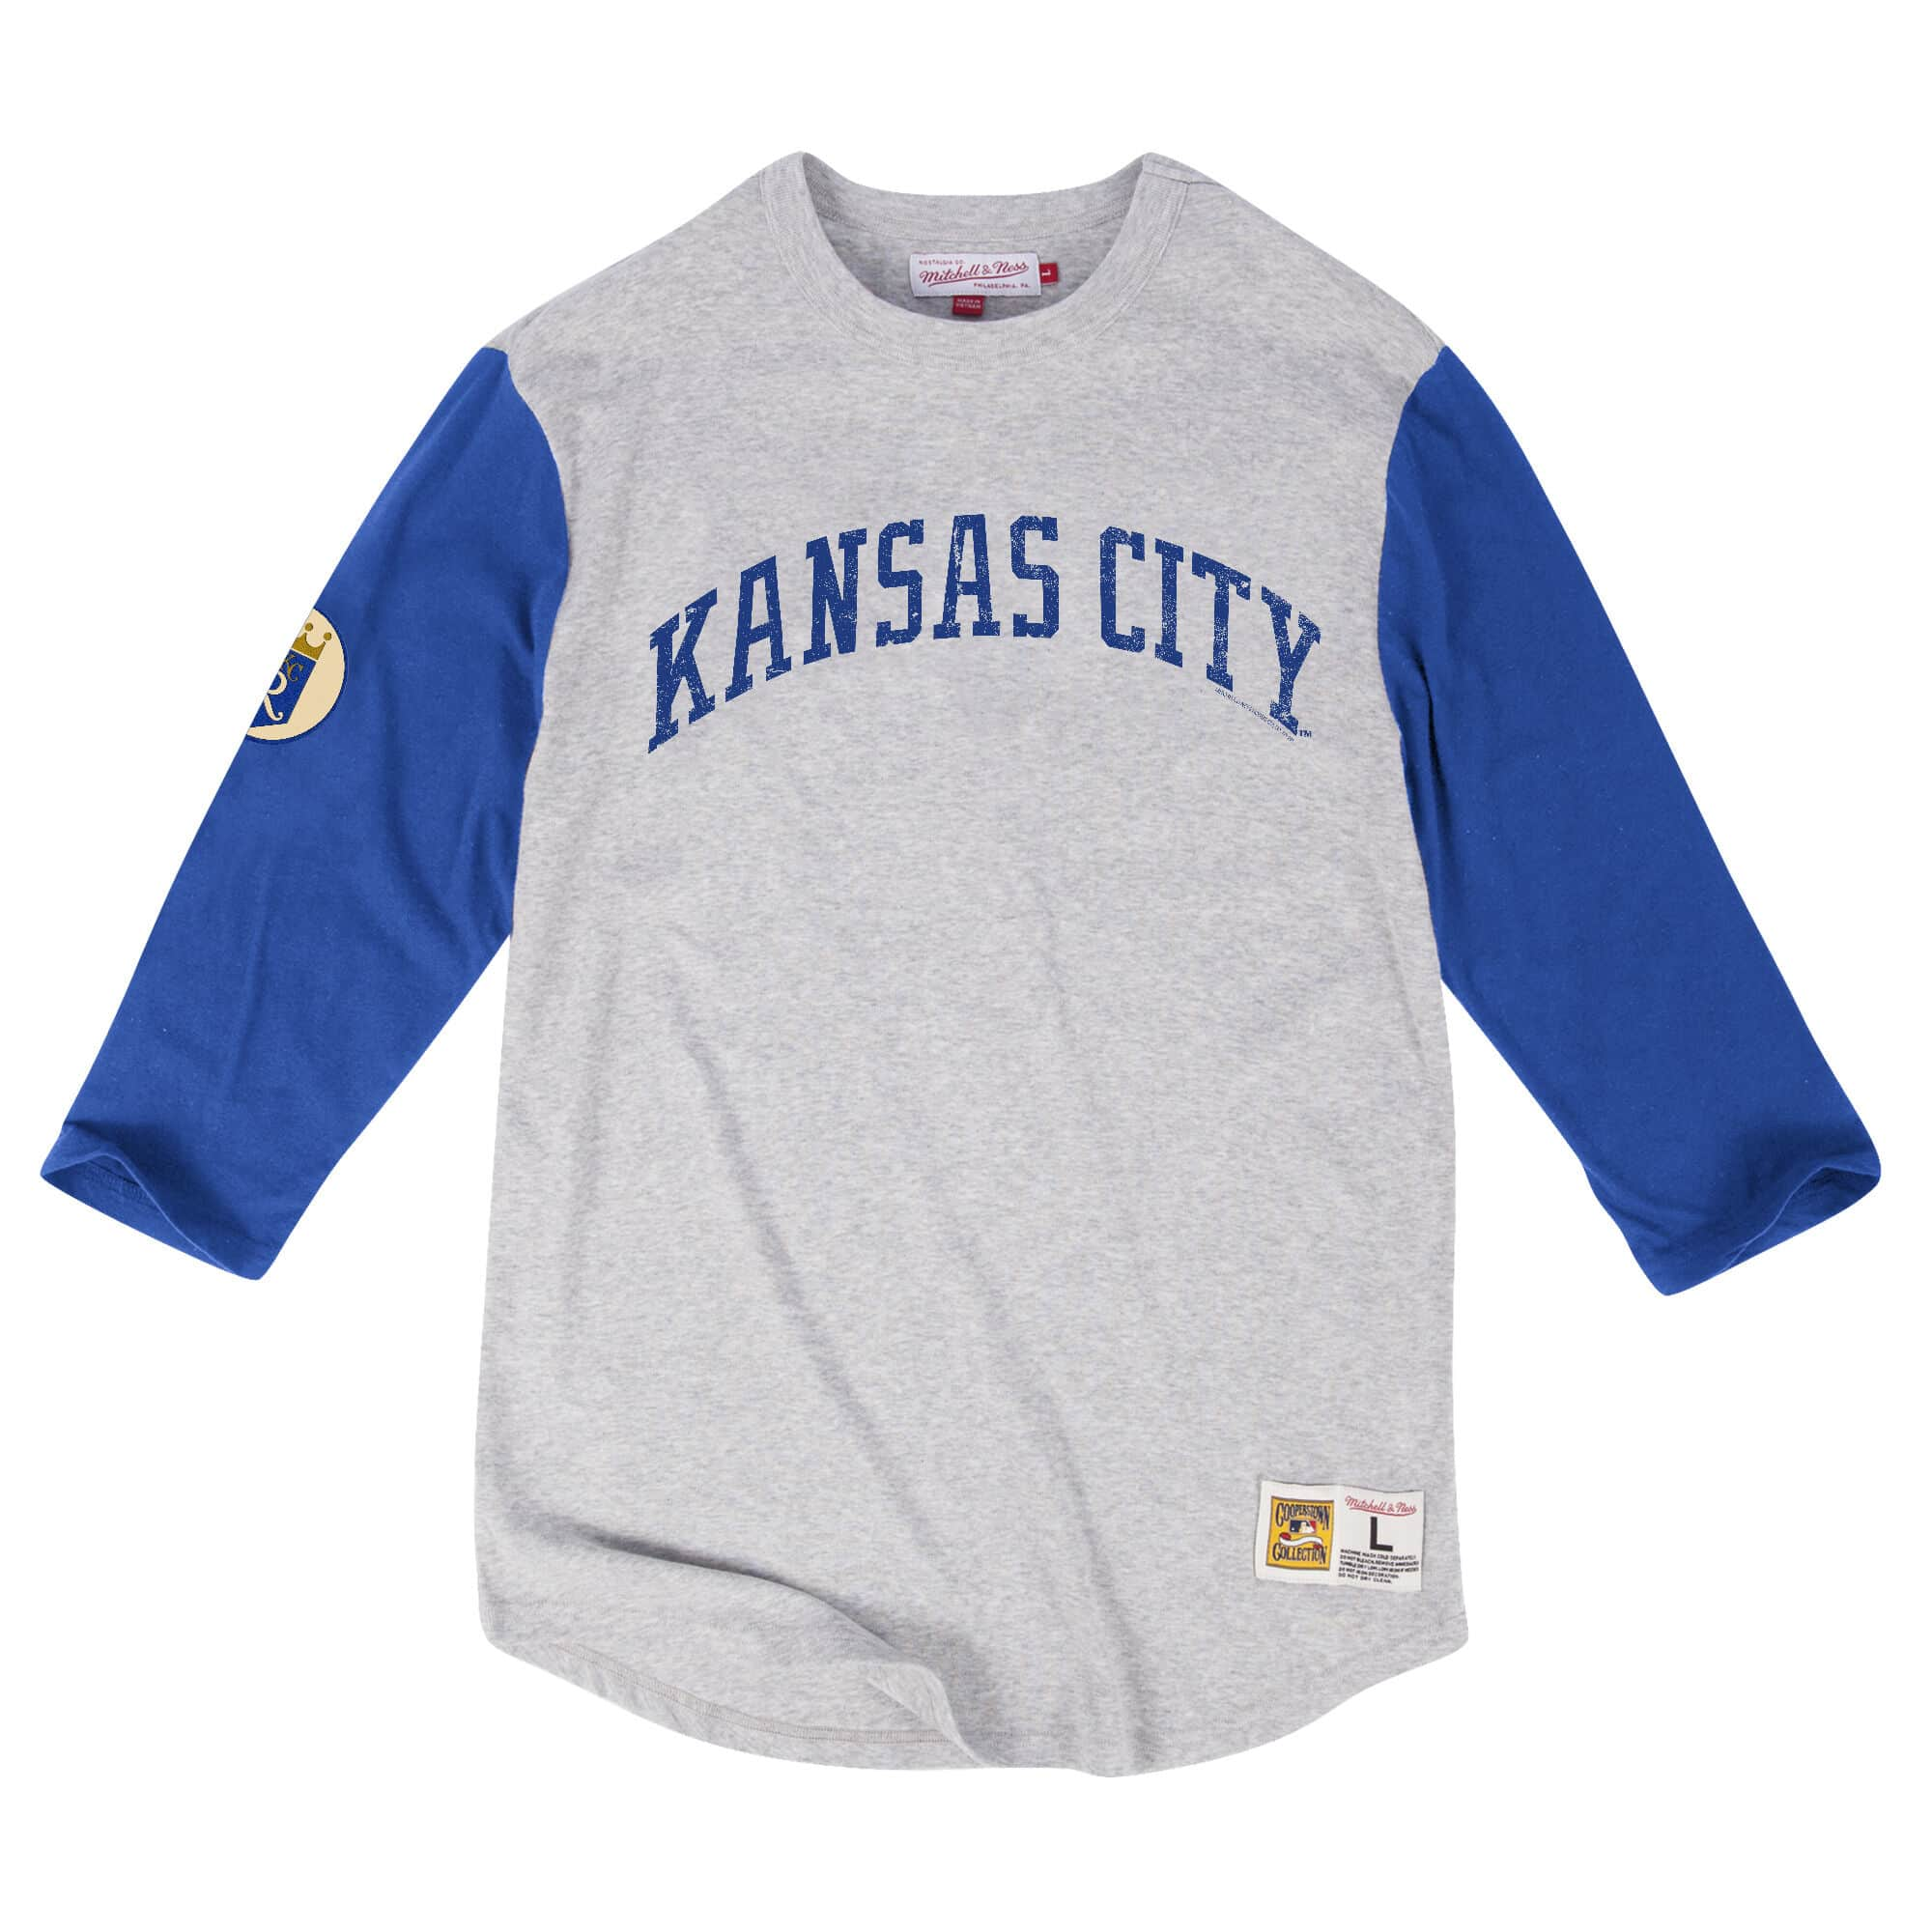 Scoring Position 3/4 Sleeve Kansas City Royals